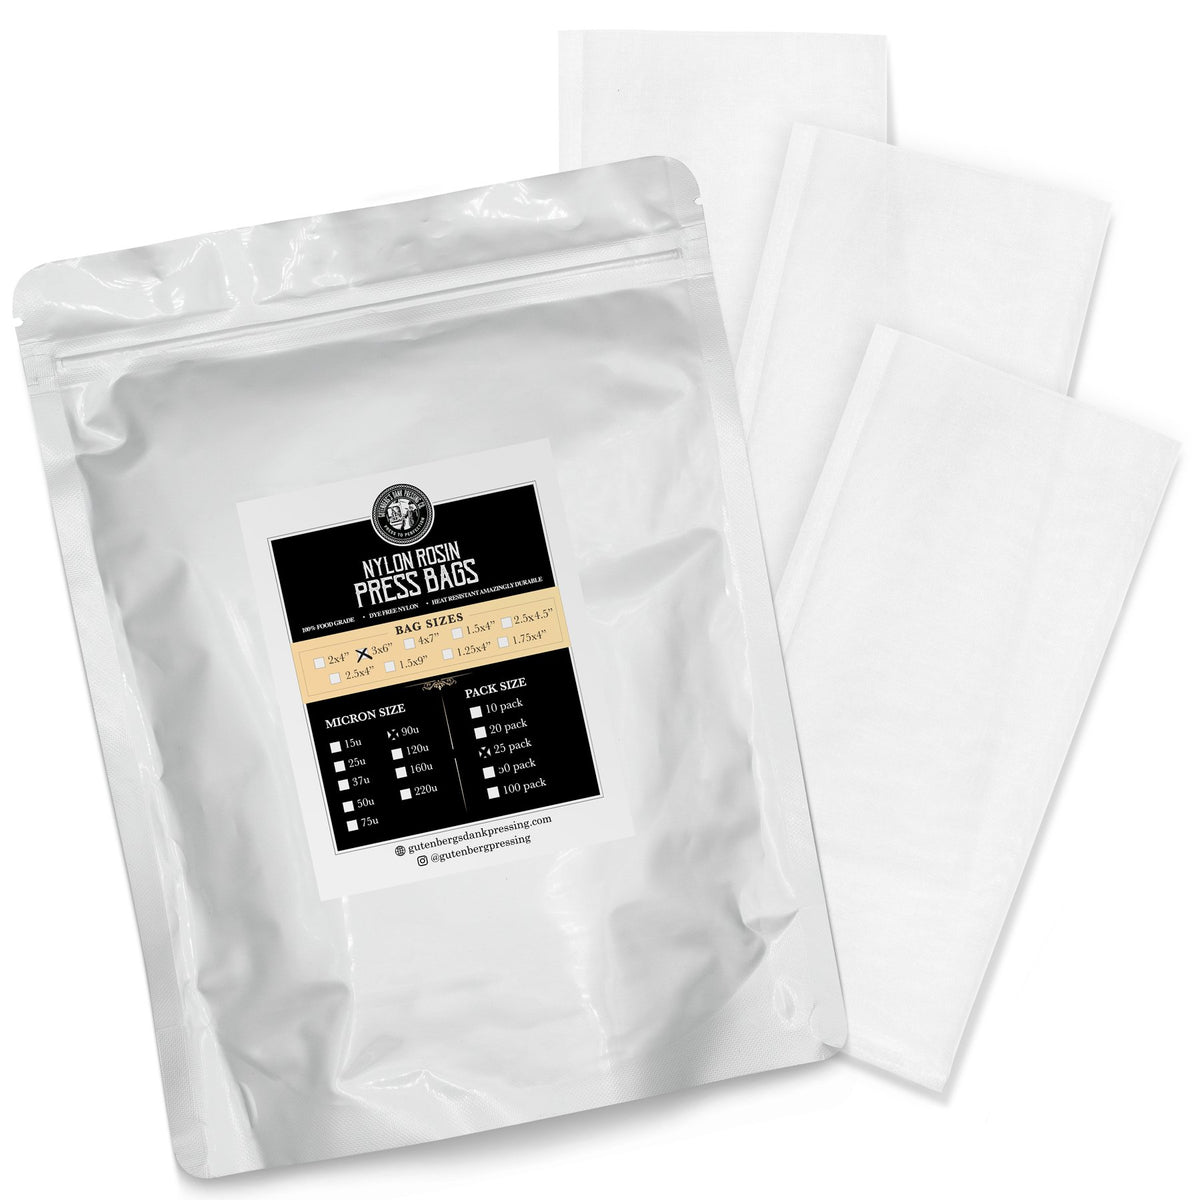 "Gutenbergs Dank Pressing Co Gutenberg's Dank Pressing Co 3"" x 6"" Rosin Bags-25 Pack"